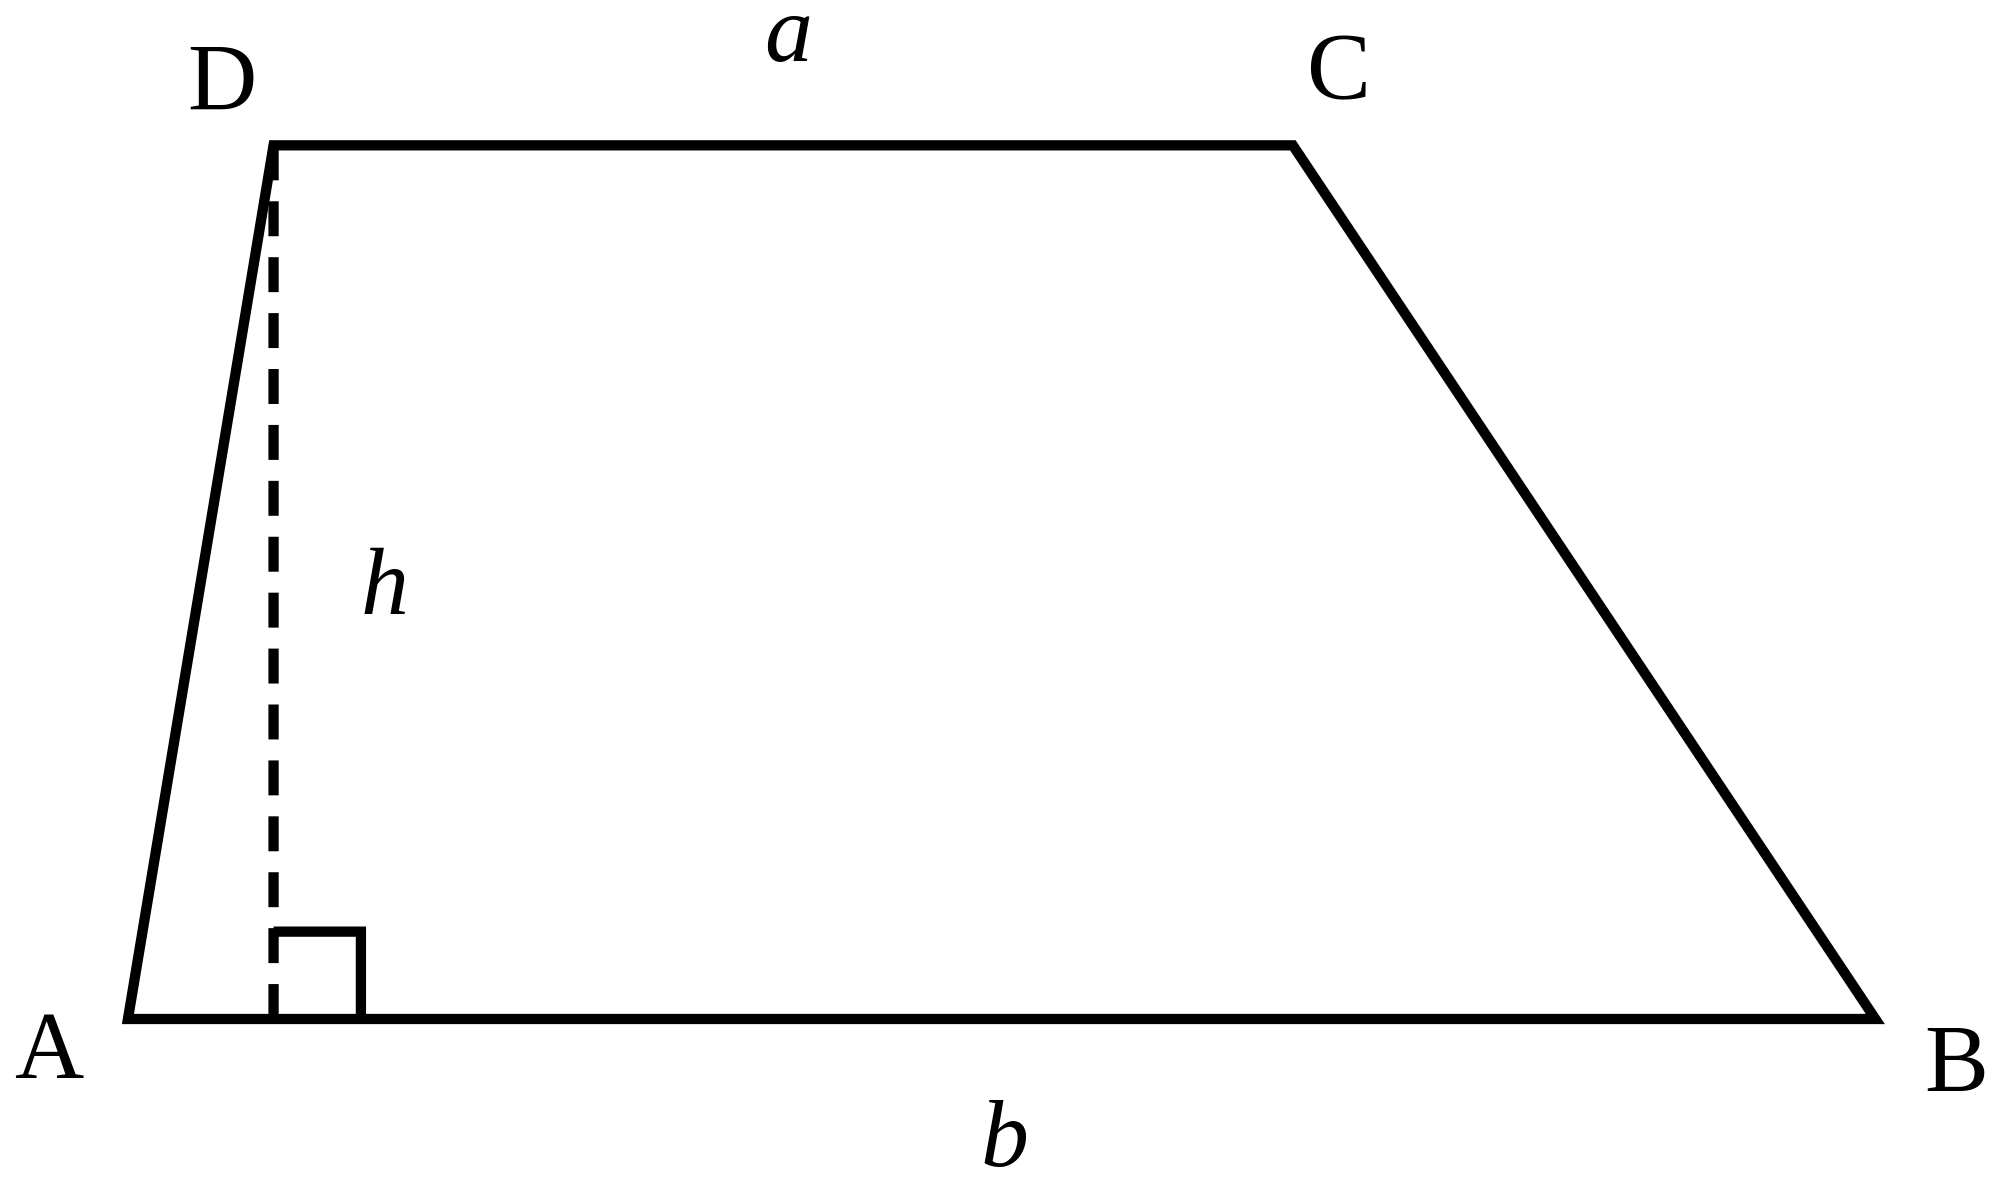 trapezoid png